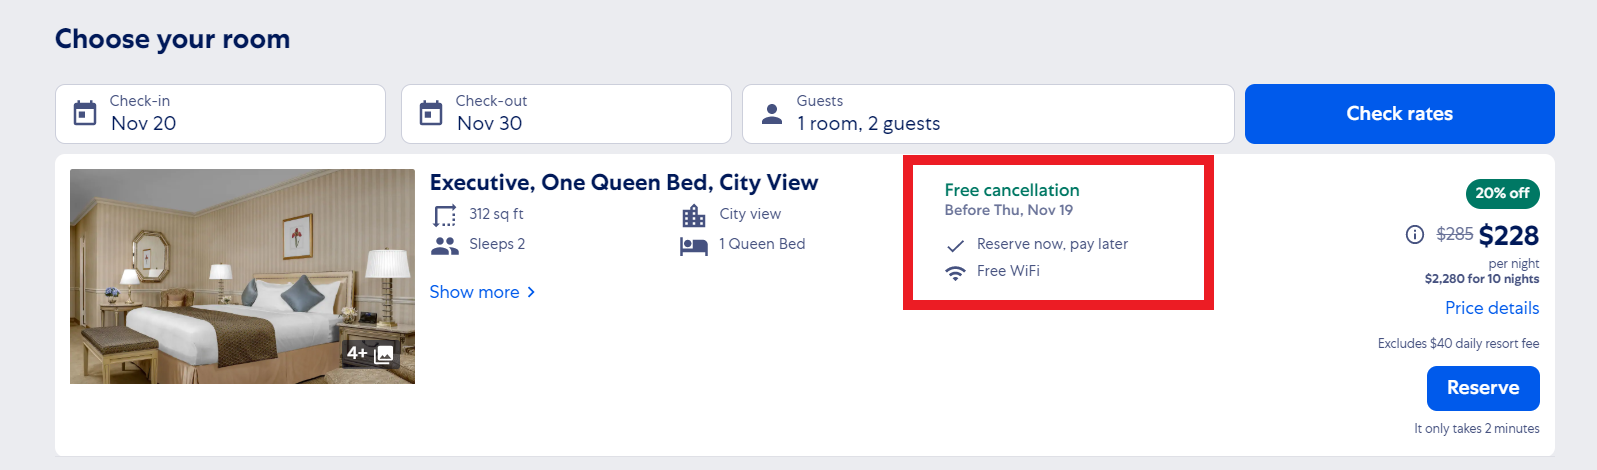 Expedia free cancellation policy